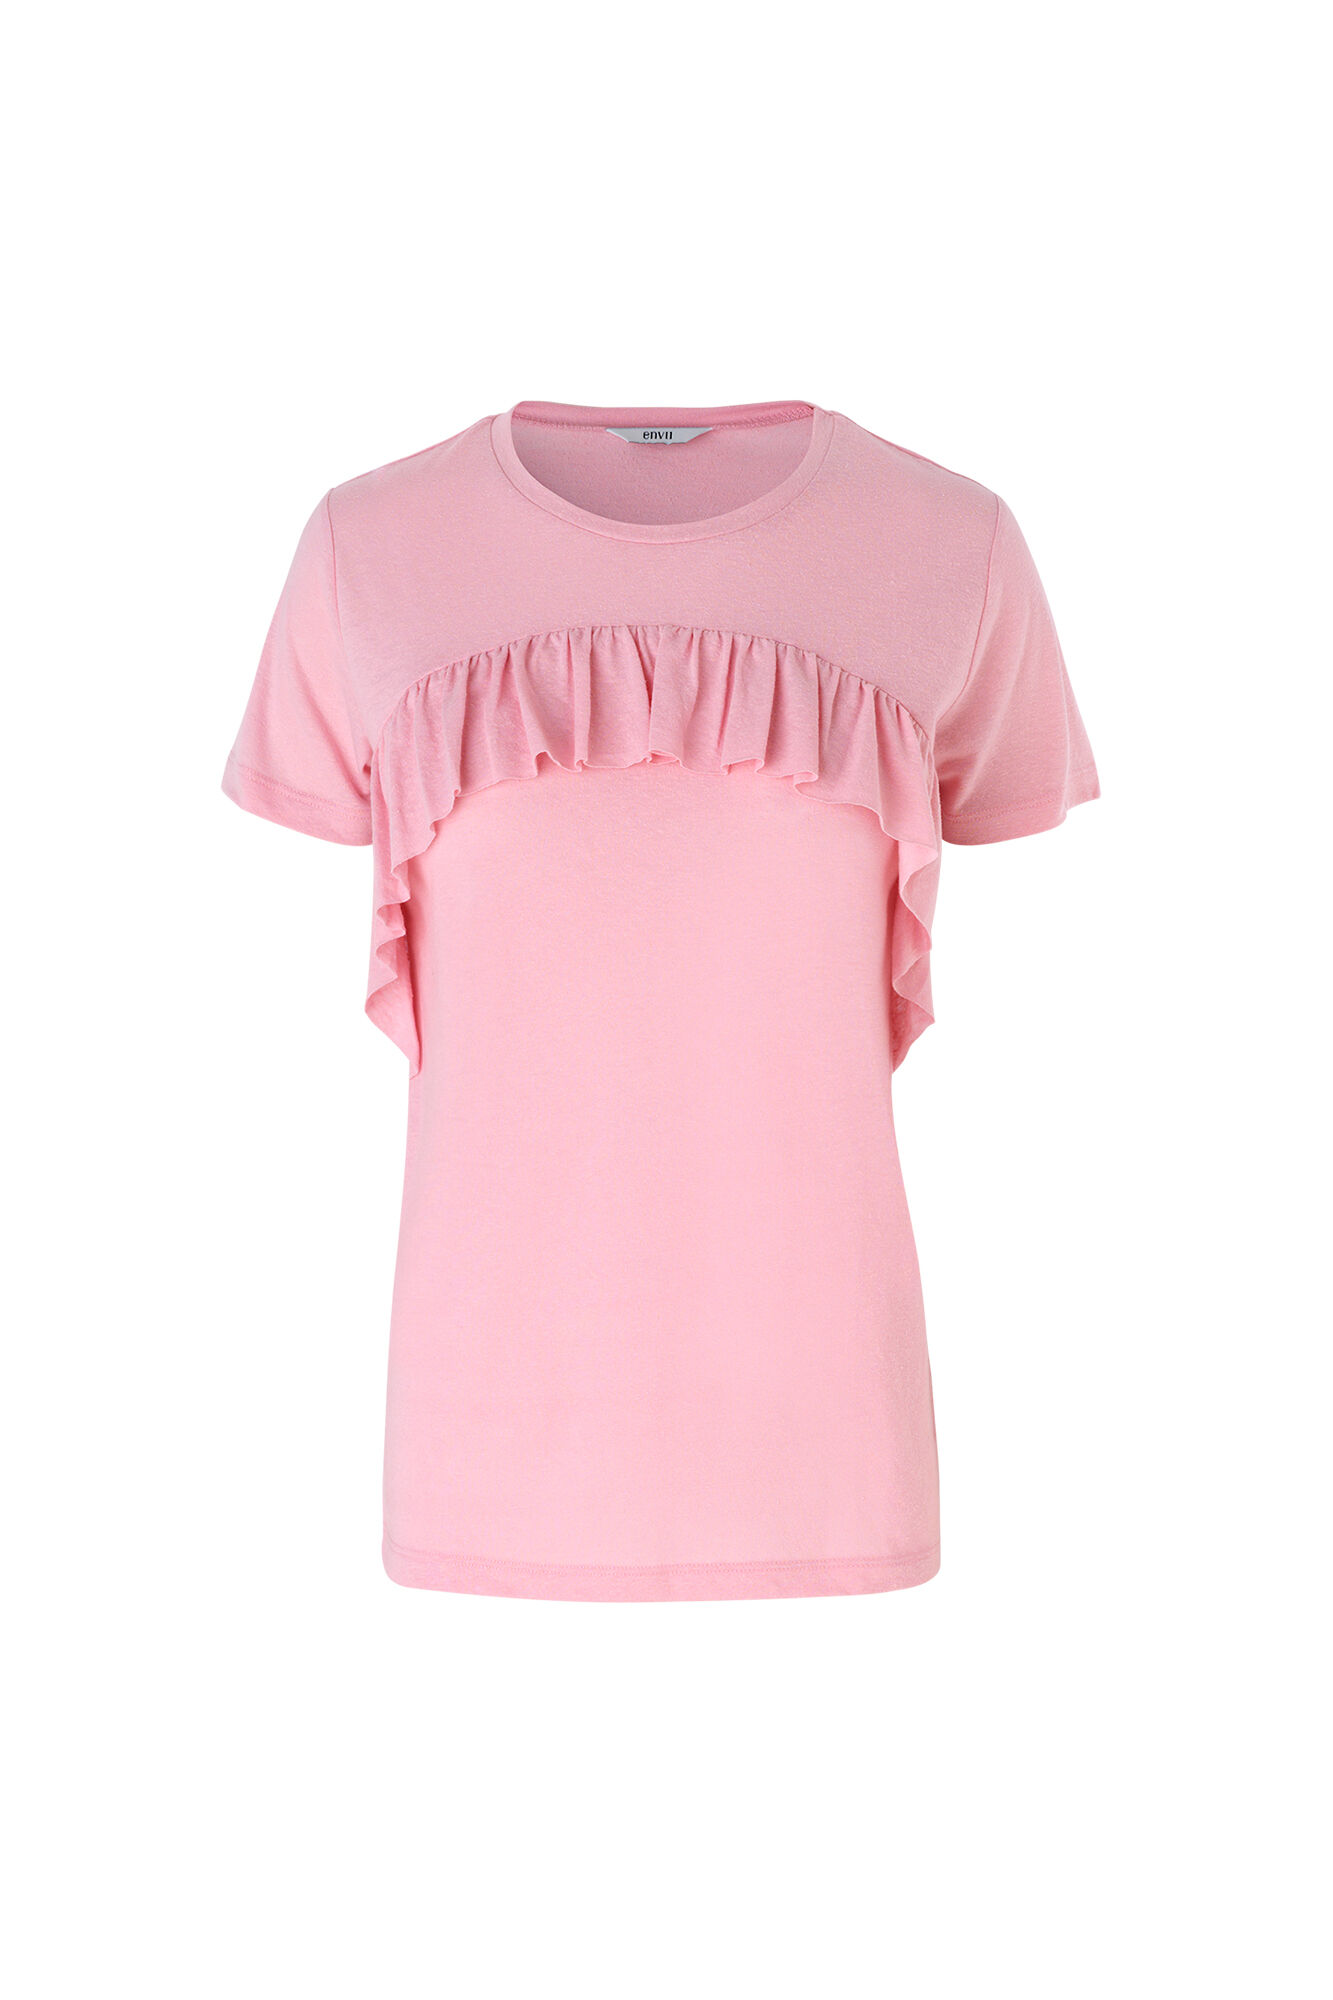 ENVARLA SS TEE 5908, CAMEO PINK